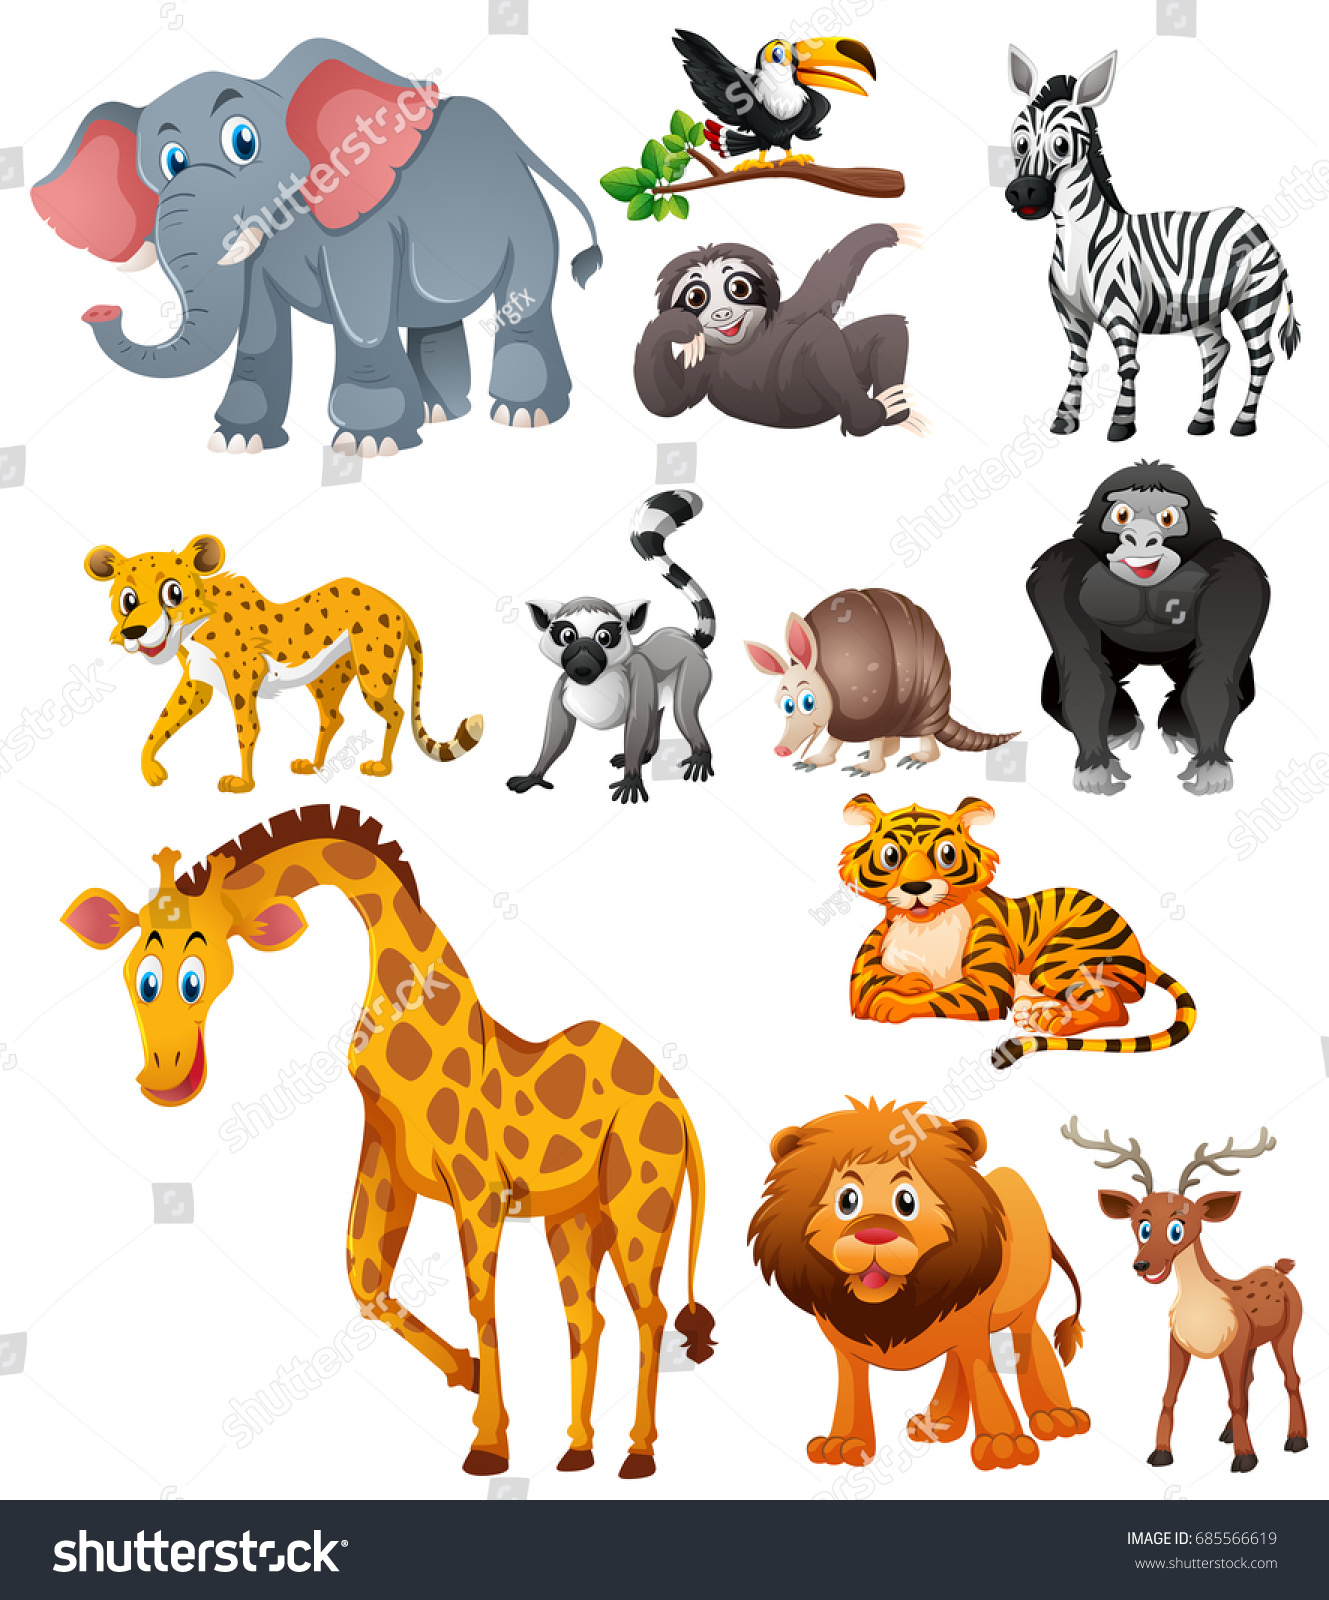 Different Types Wild Animals Illustration Stock Vector (Royalty Free)  685566619